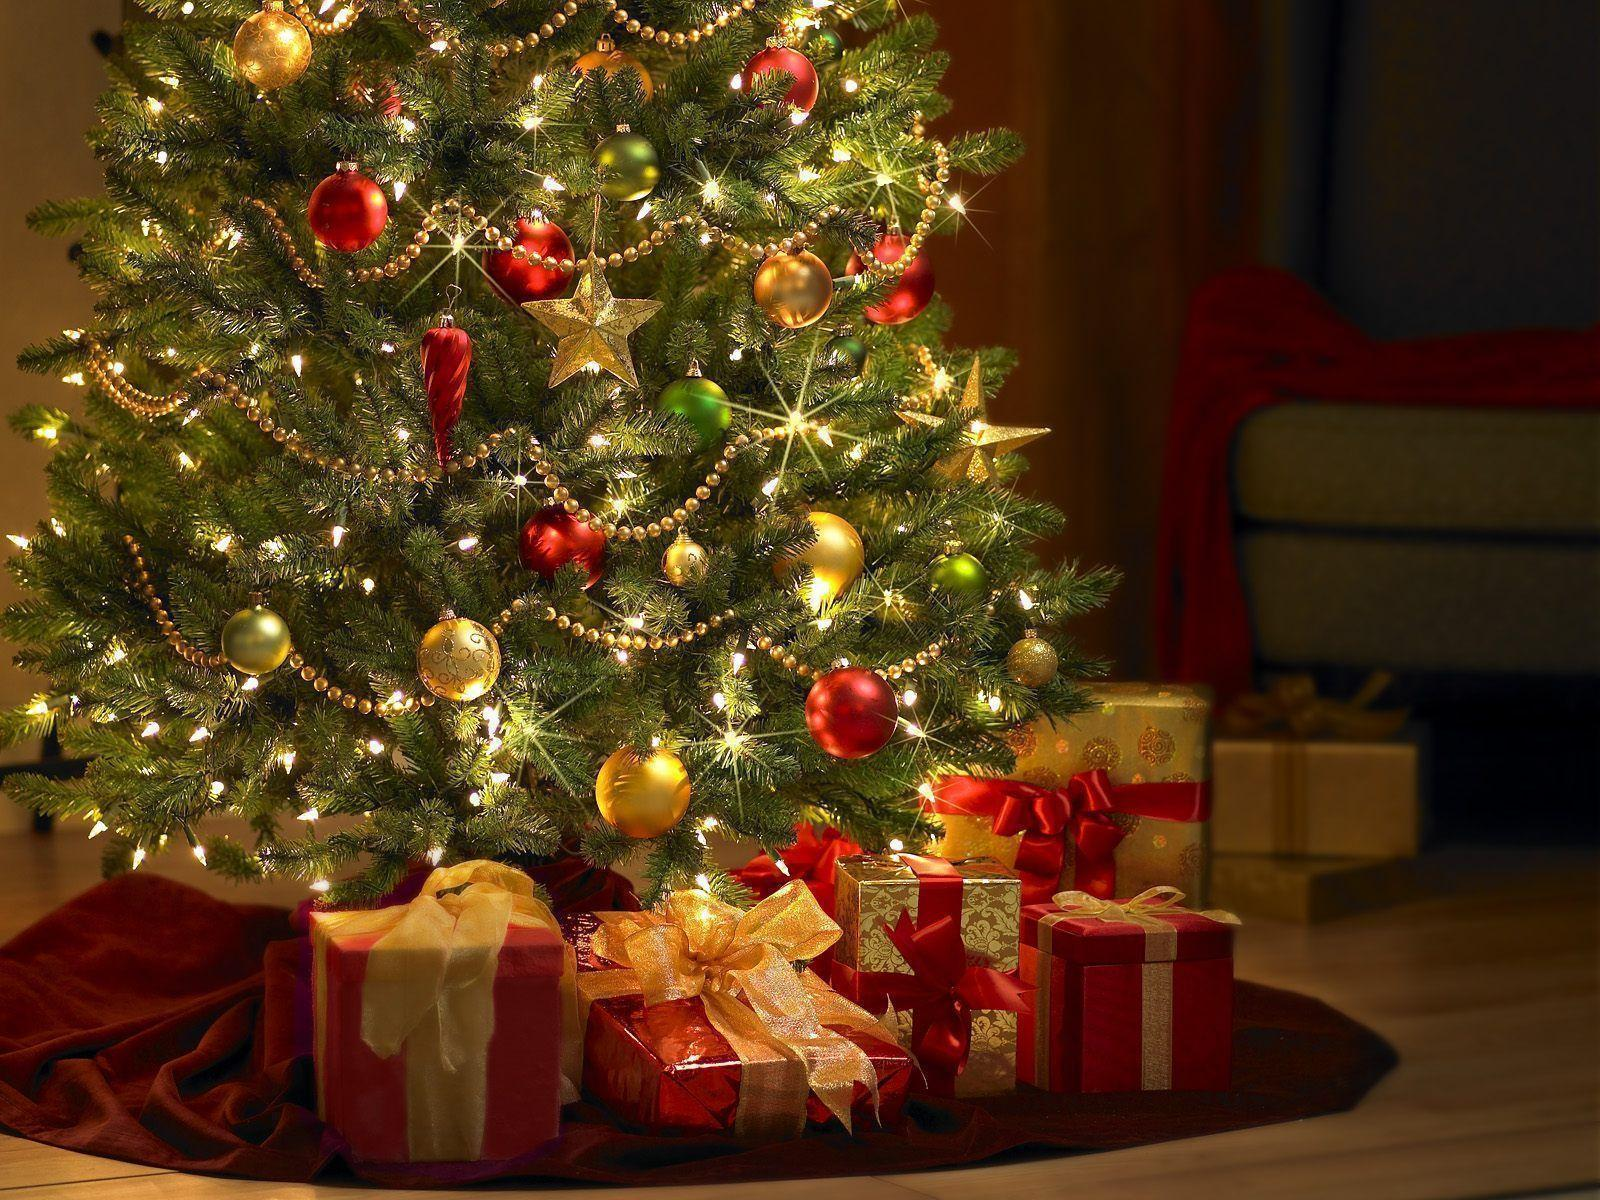 Christmas Tree Background.Christmas Tree Wallpaper Backgrounds Wallpaper Cave